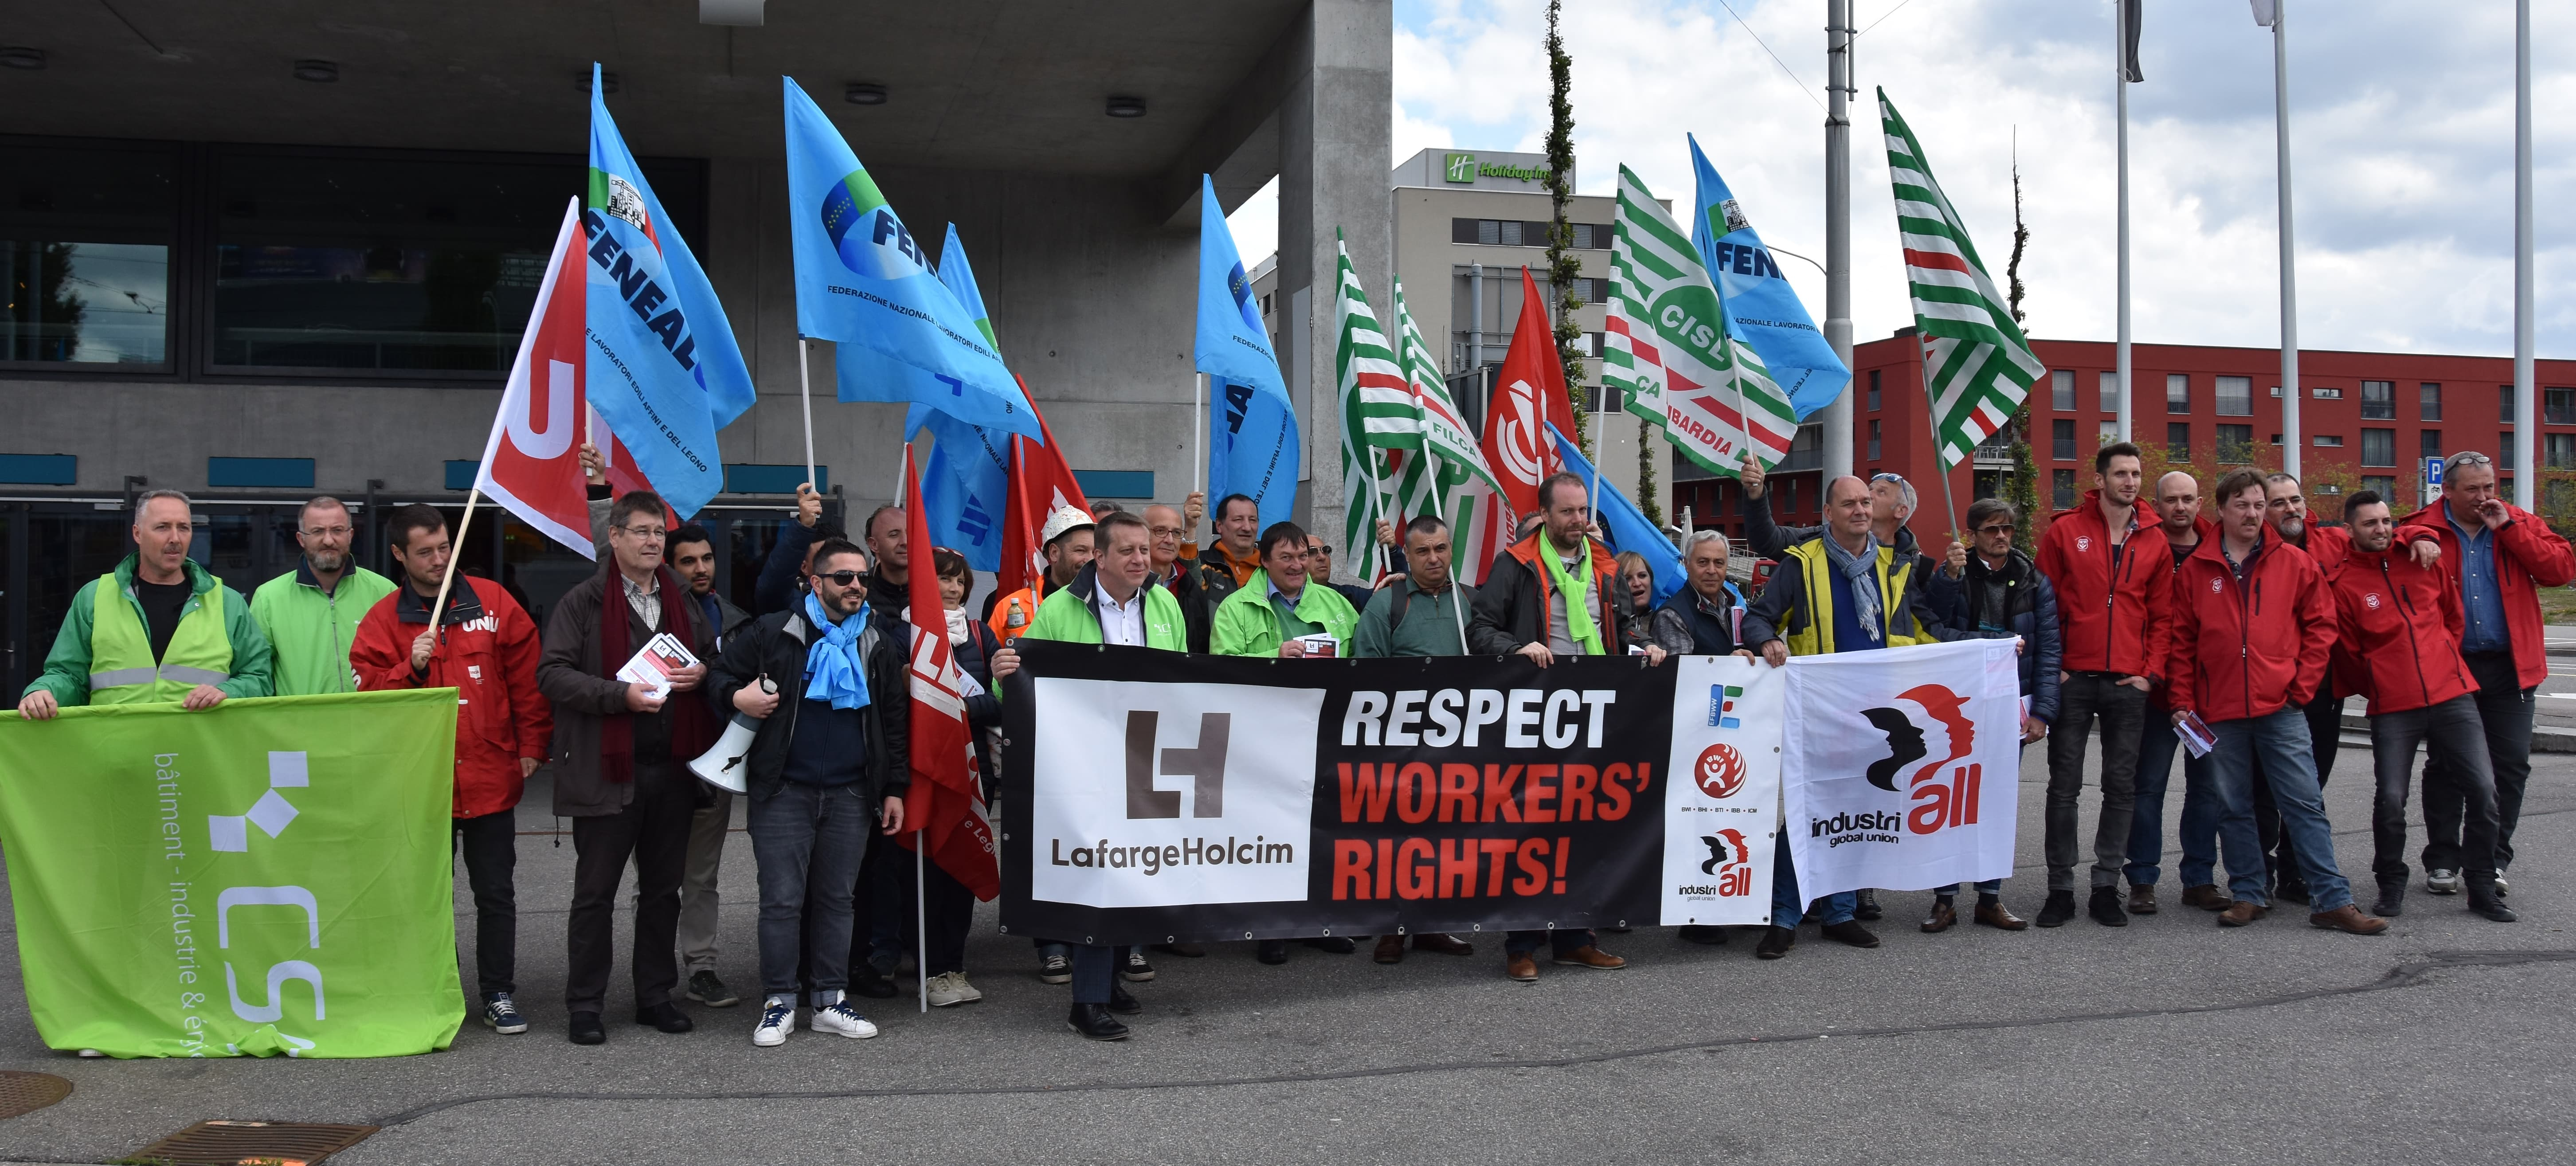 Unions demand LafargeHolcim honours its commitment and stops killing workers.